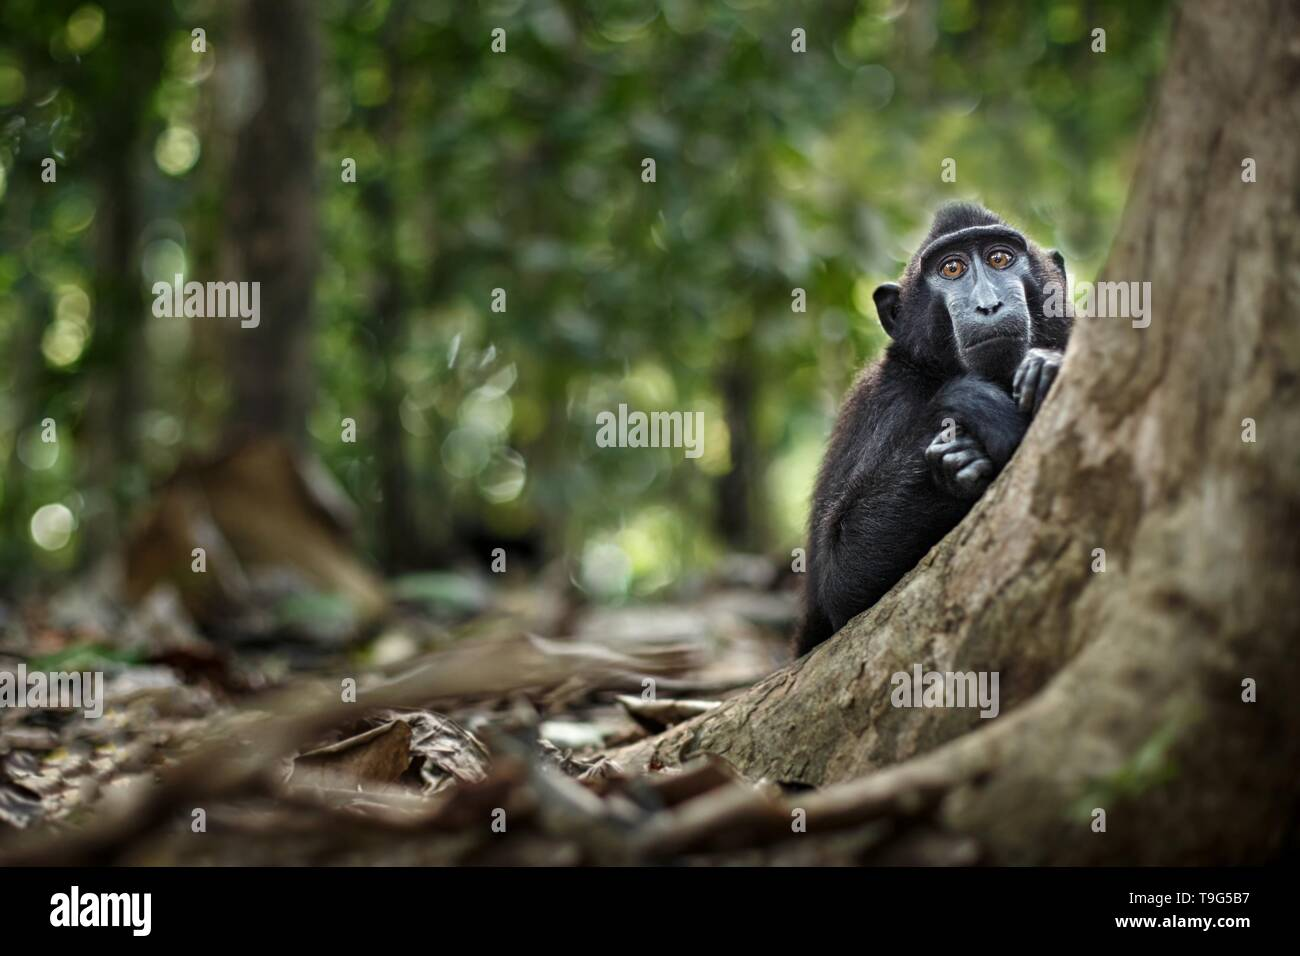 Young crested macaque looking curiously into the camera in jungle. Close up portrait. Endemic black crested macaque. Natural habitat. Unique mammals i - Stock Image